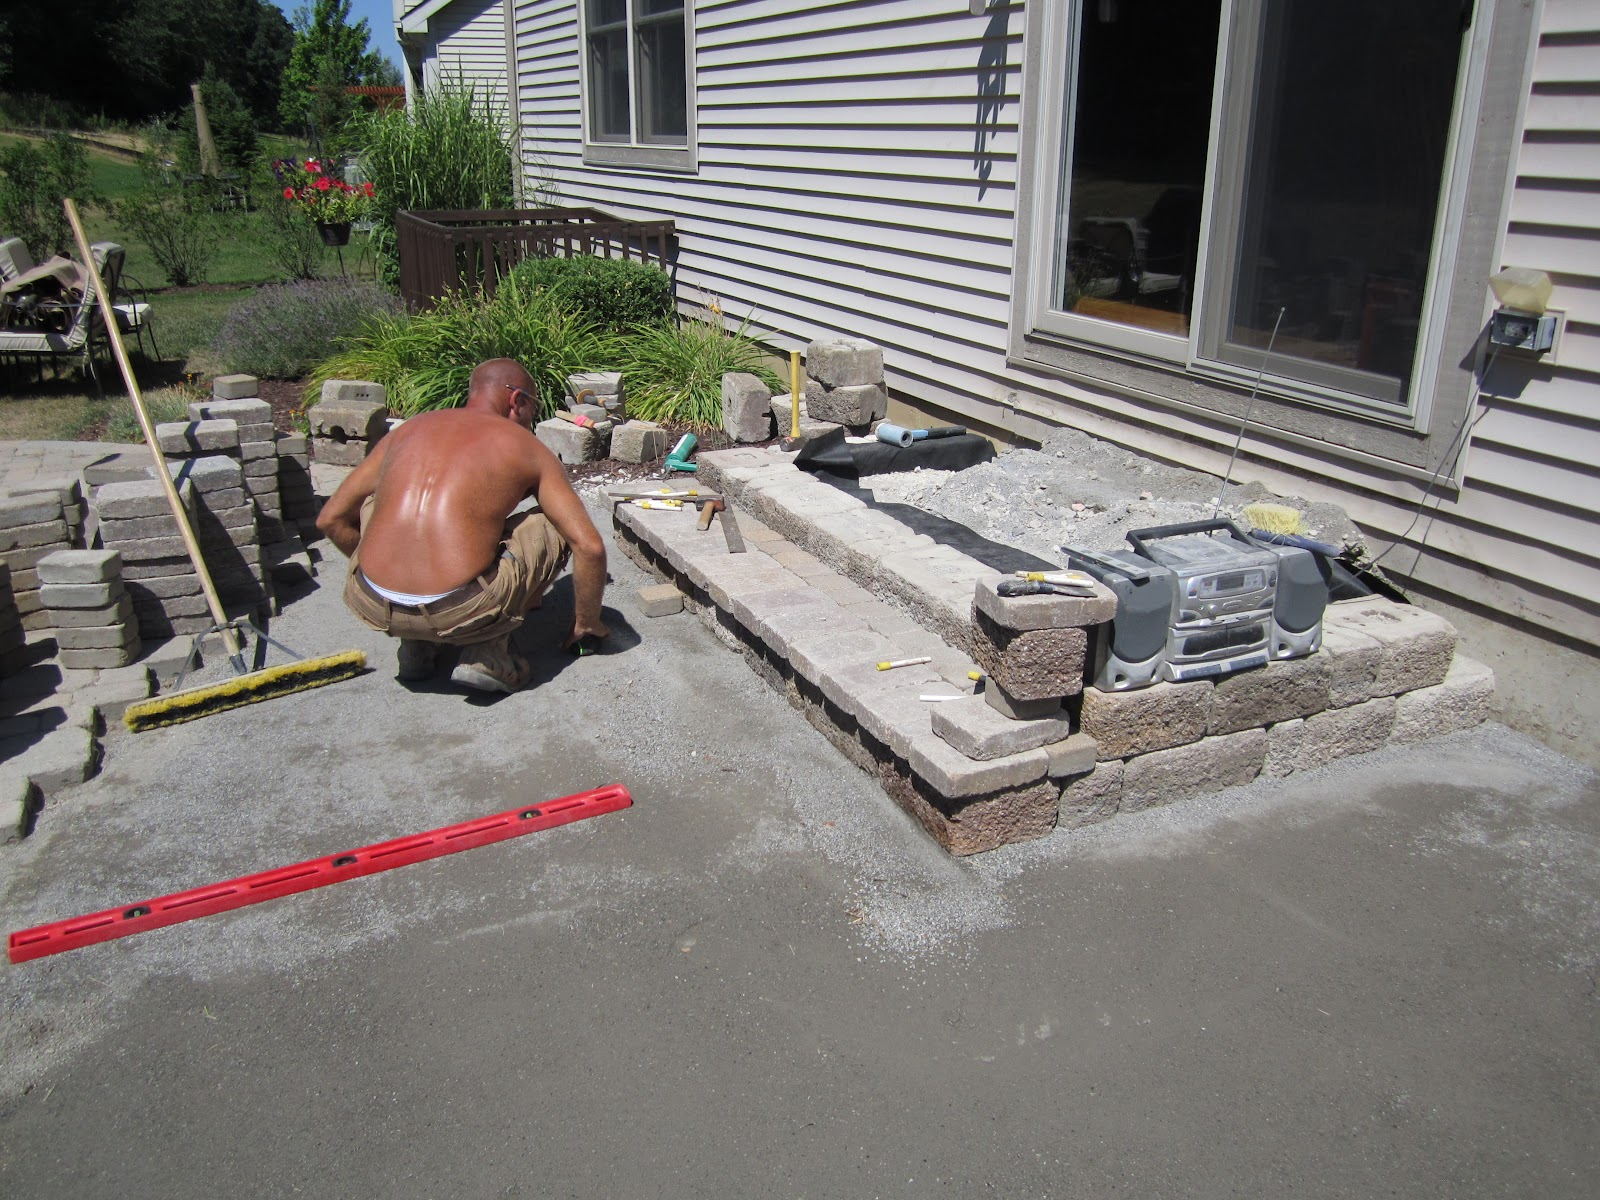 Awesome The Pavers Patio Redesign Required Us To Reconstruct The Paver Steps Coming  Out The Doorwall. We Wanted To Make Sure They Had A Safe 3ft Out Landing  Step ...